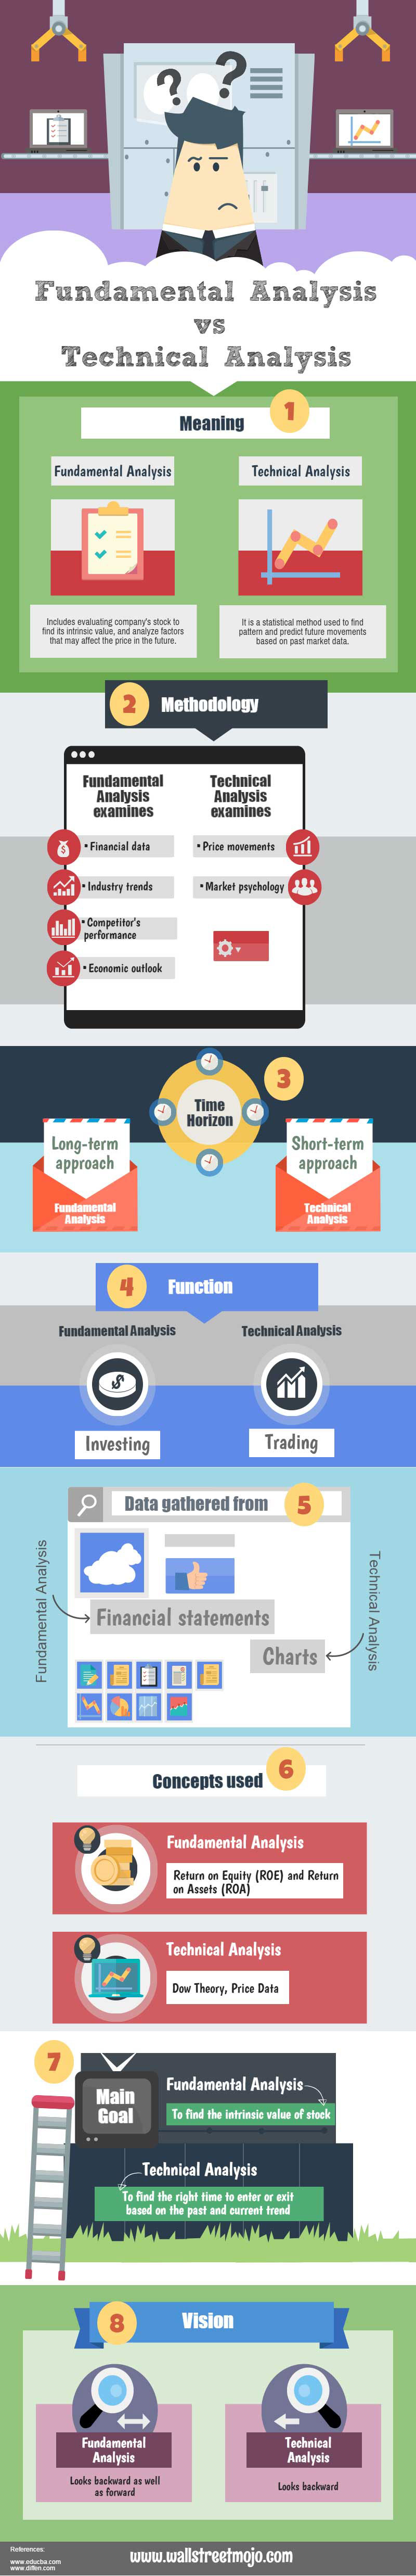 research papers on fundamental and technical analysis Analysis of fundamental and technical factors to stock  this paper aims identifying dominant factor of fundamental and technical factors to stock price of resedential property sector at indonesia stock exchange this study is explanatory research with a quantitative approach to determine.